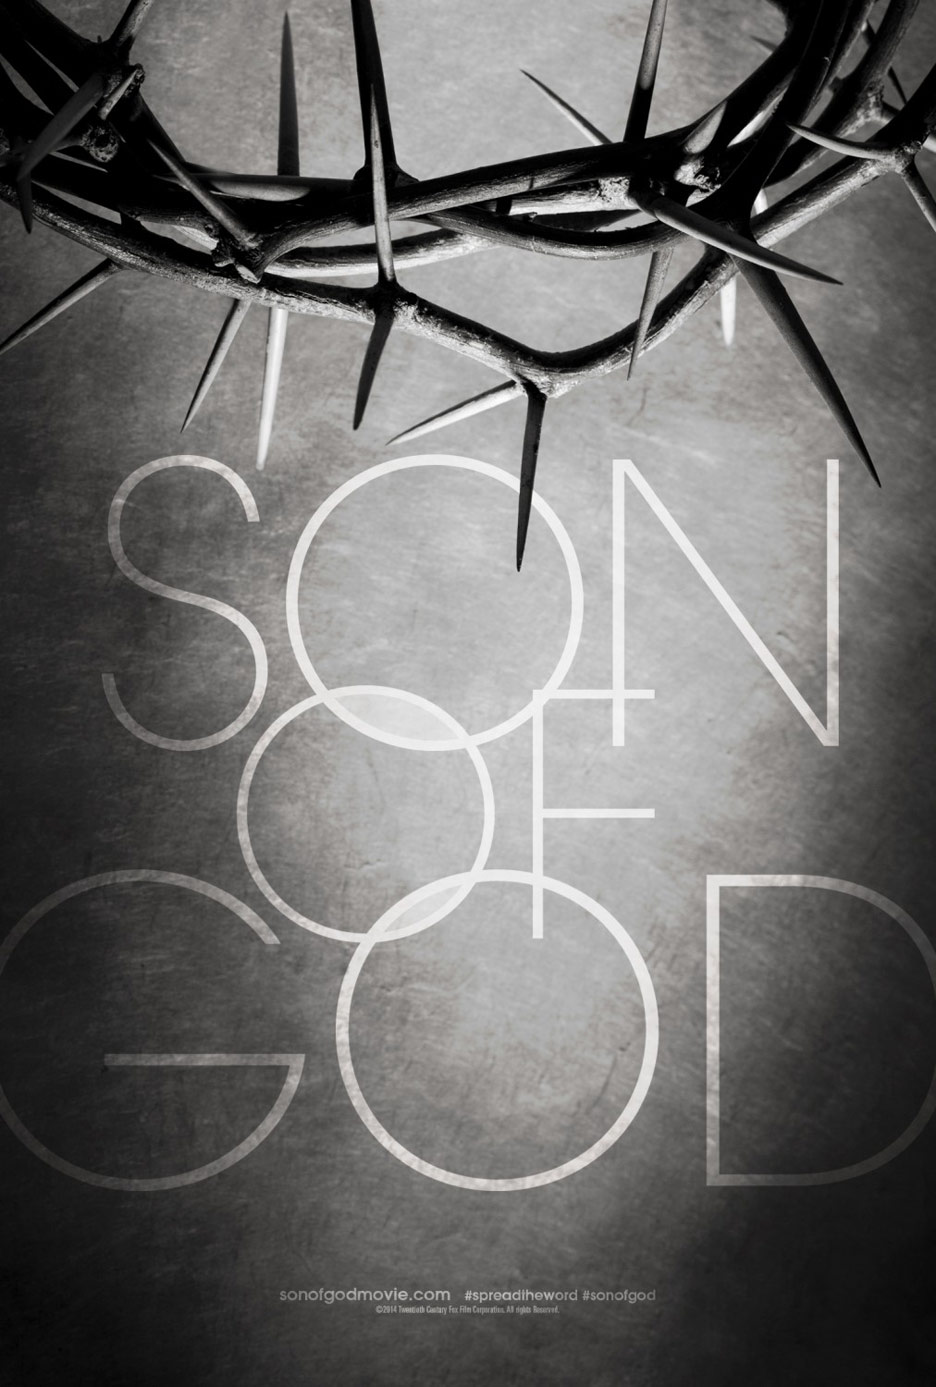 Son of God Poster #2